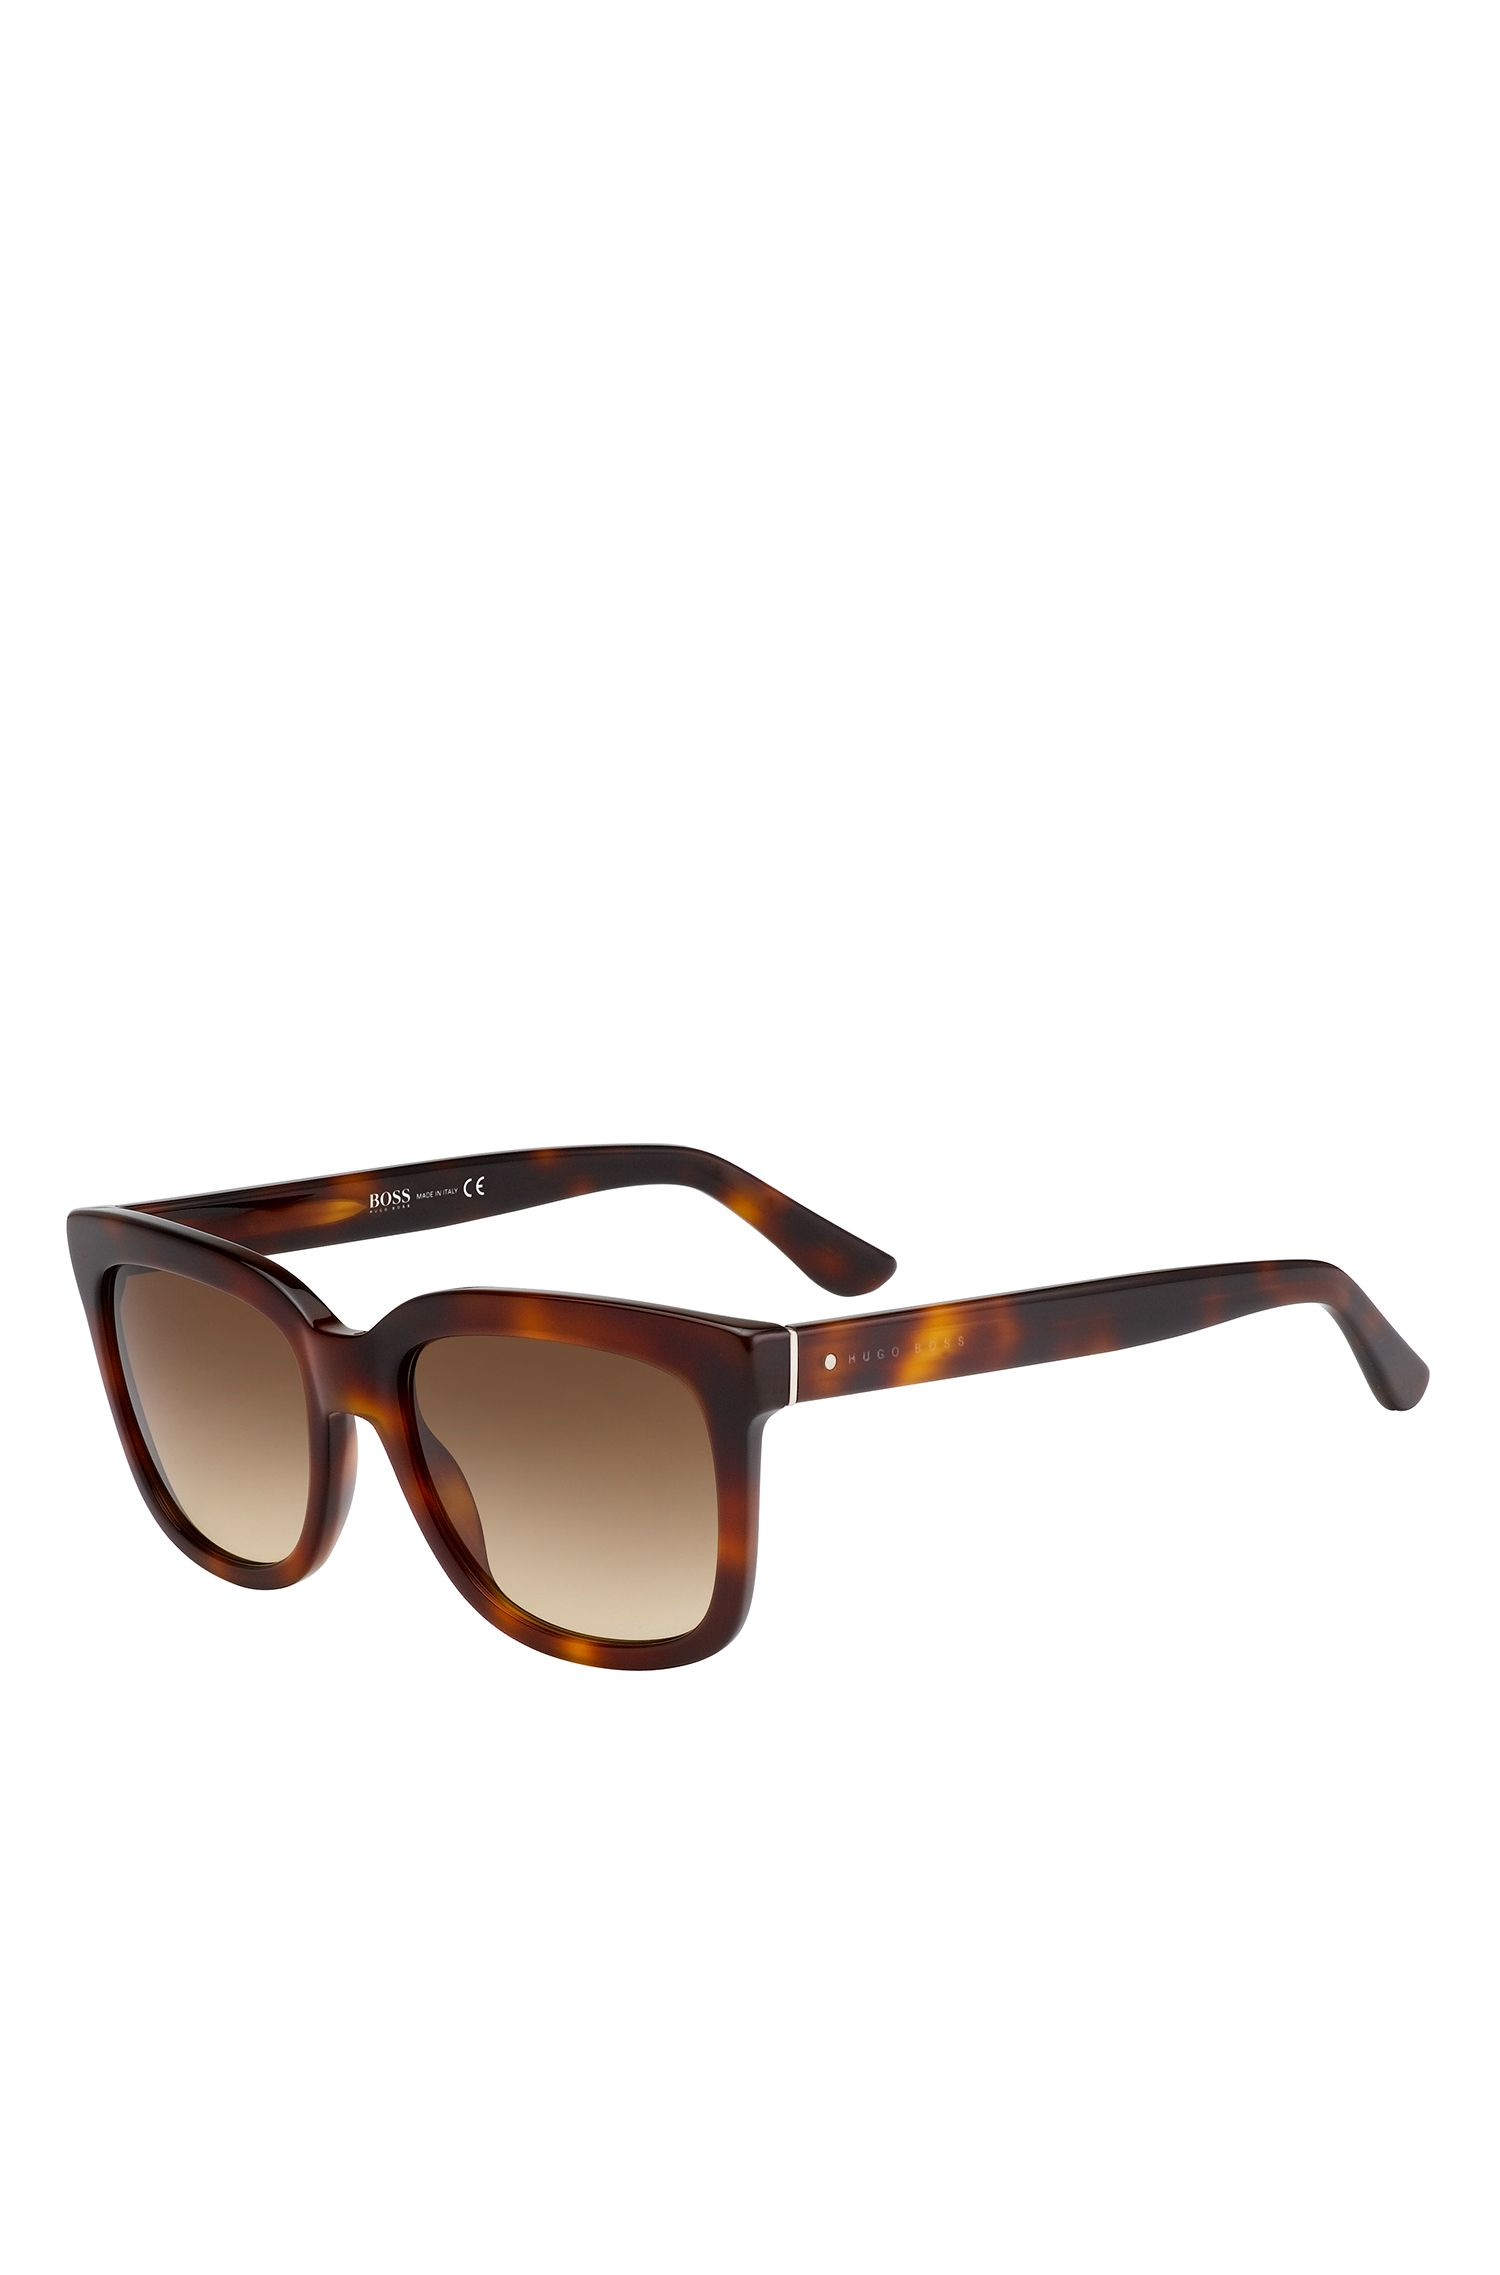 'BOSS 0741S' | Brown Lens Rectangular Sunglasses